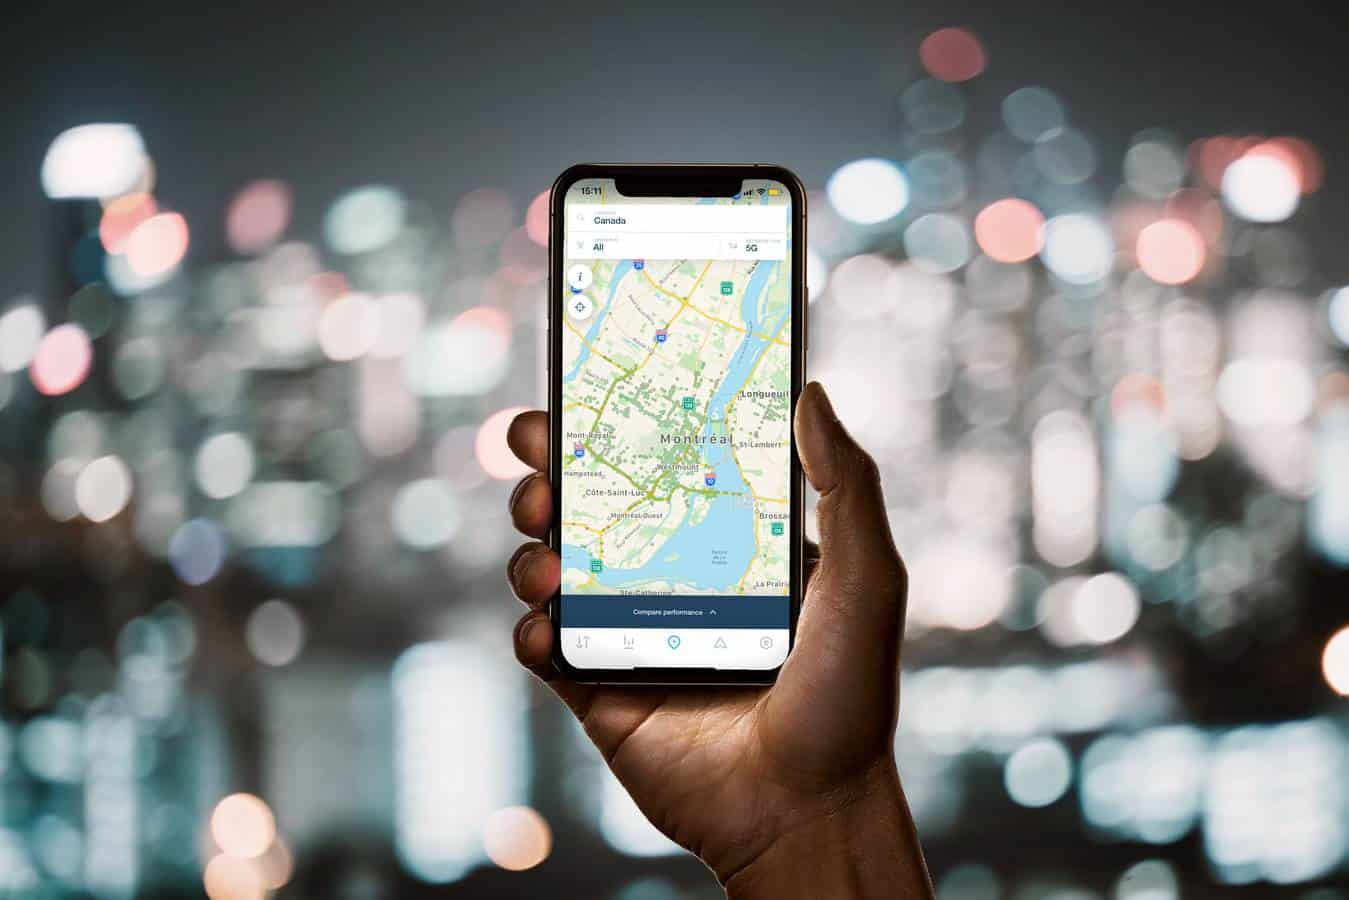 Opensignal Adds 5G Coverage Maps To Its Mobile App